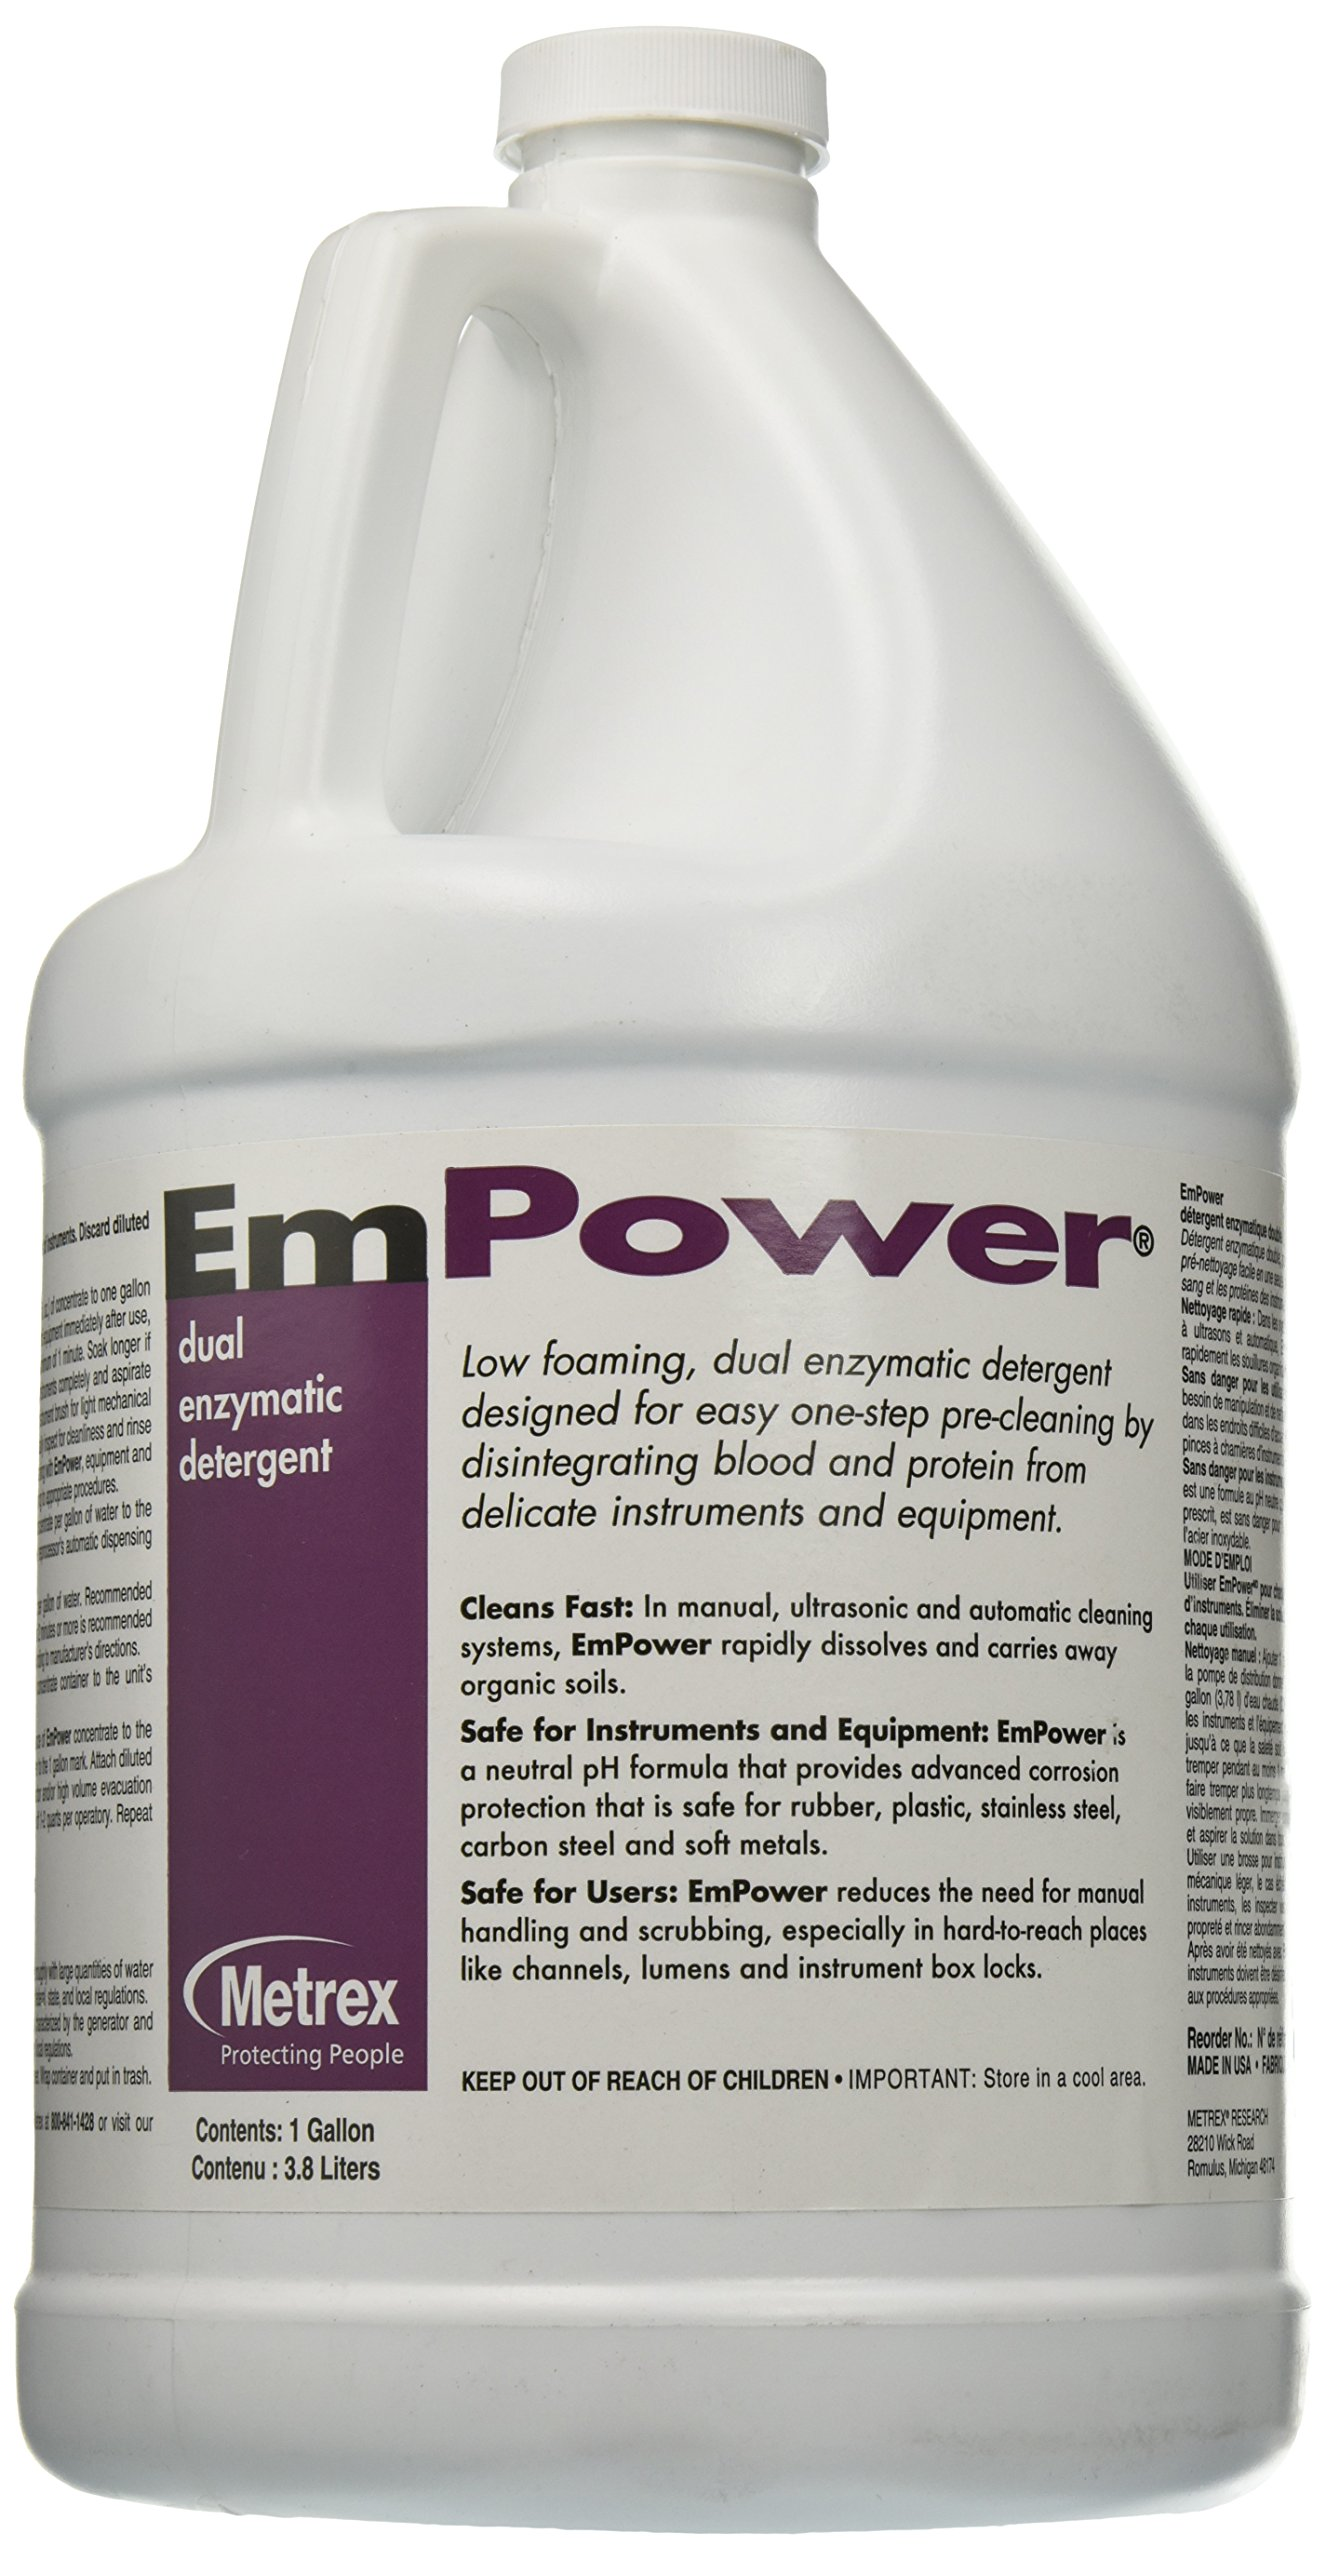 Metrex 10-4100 EmPower Dual-Enzymatic Detergent, 1 gal Capacity